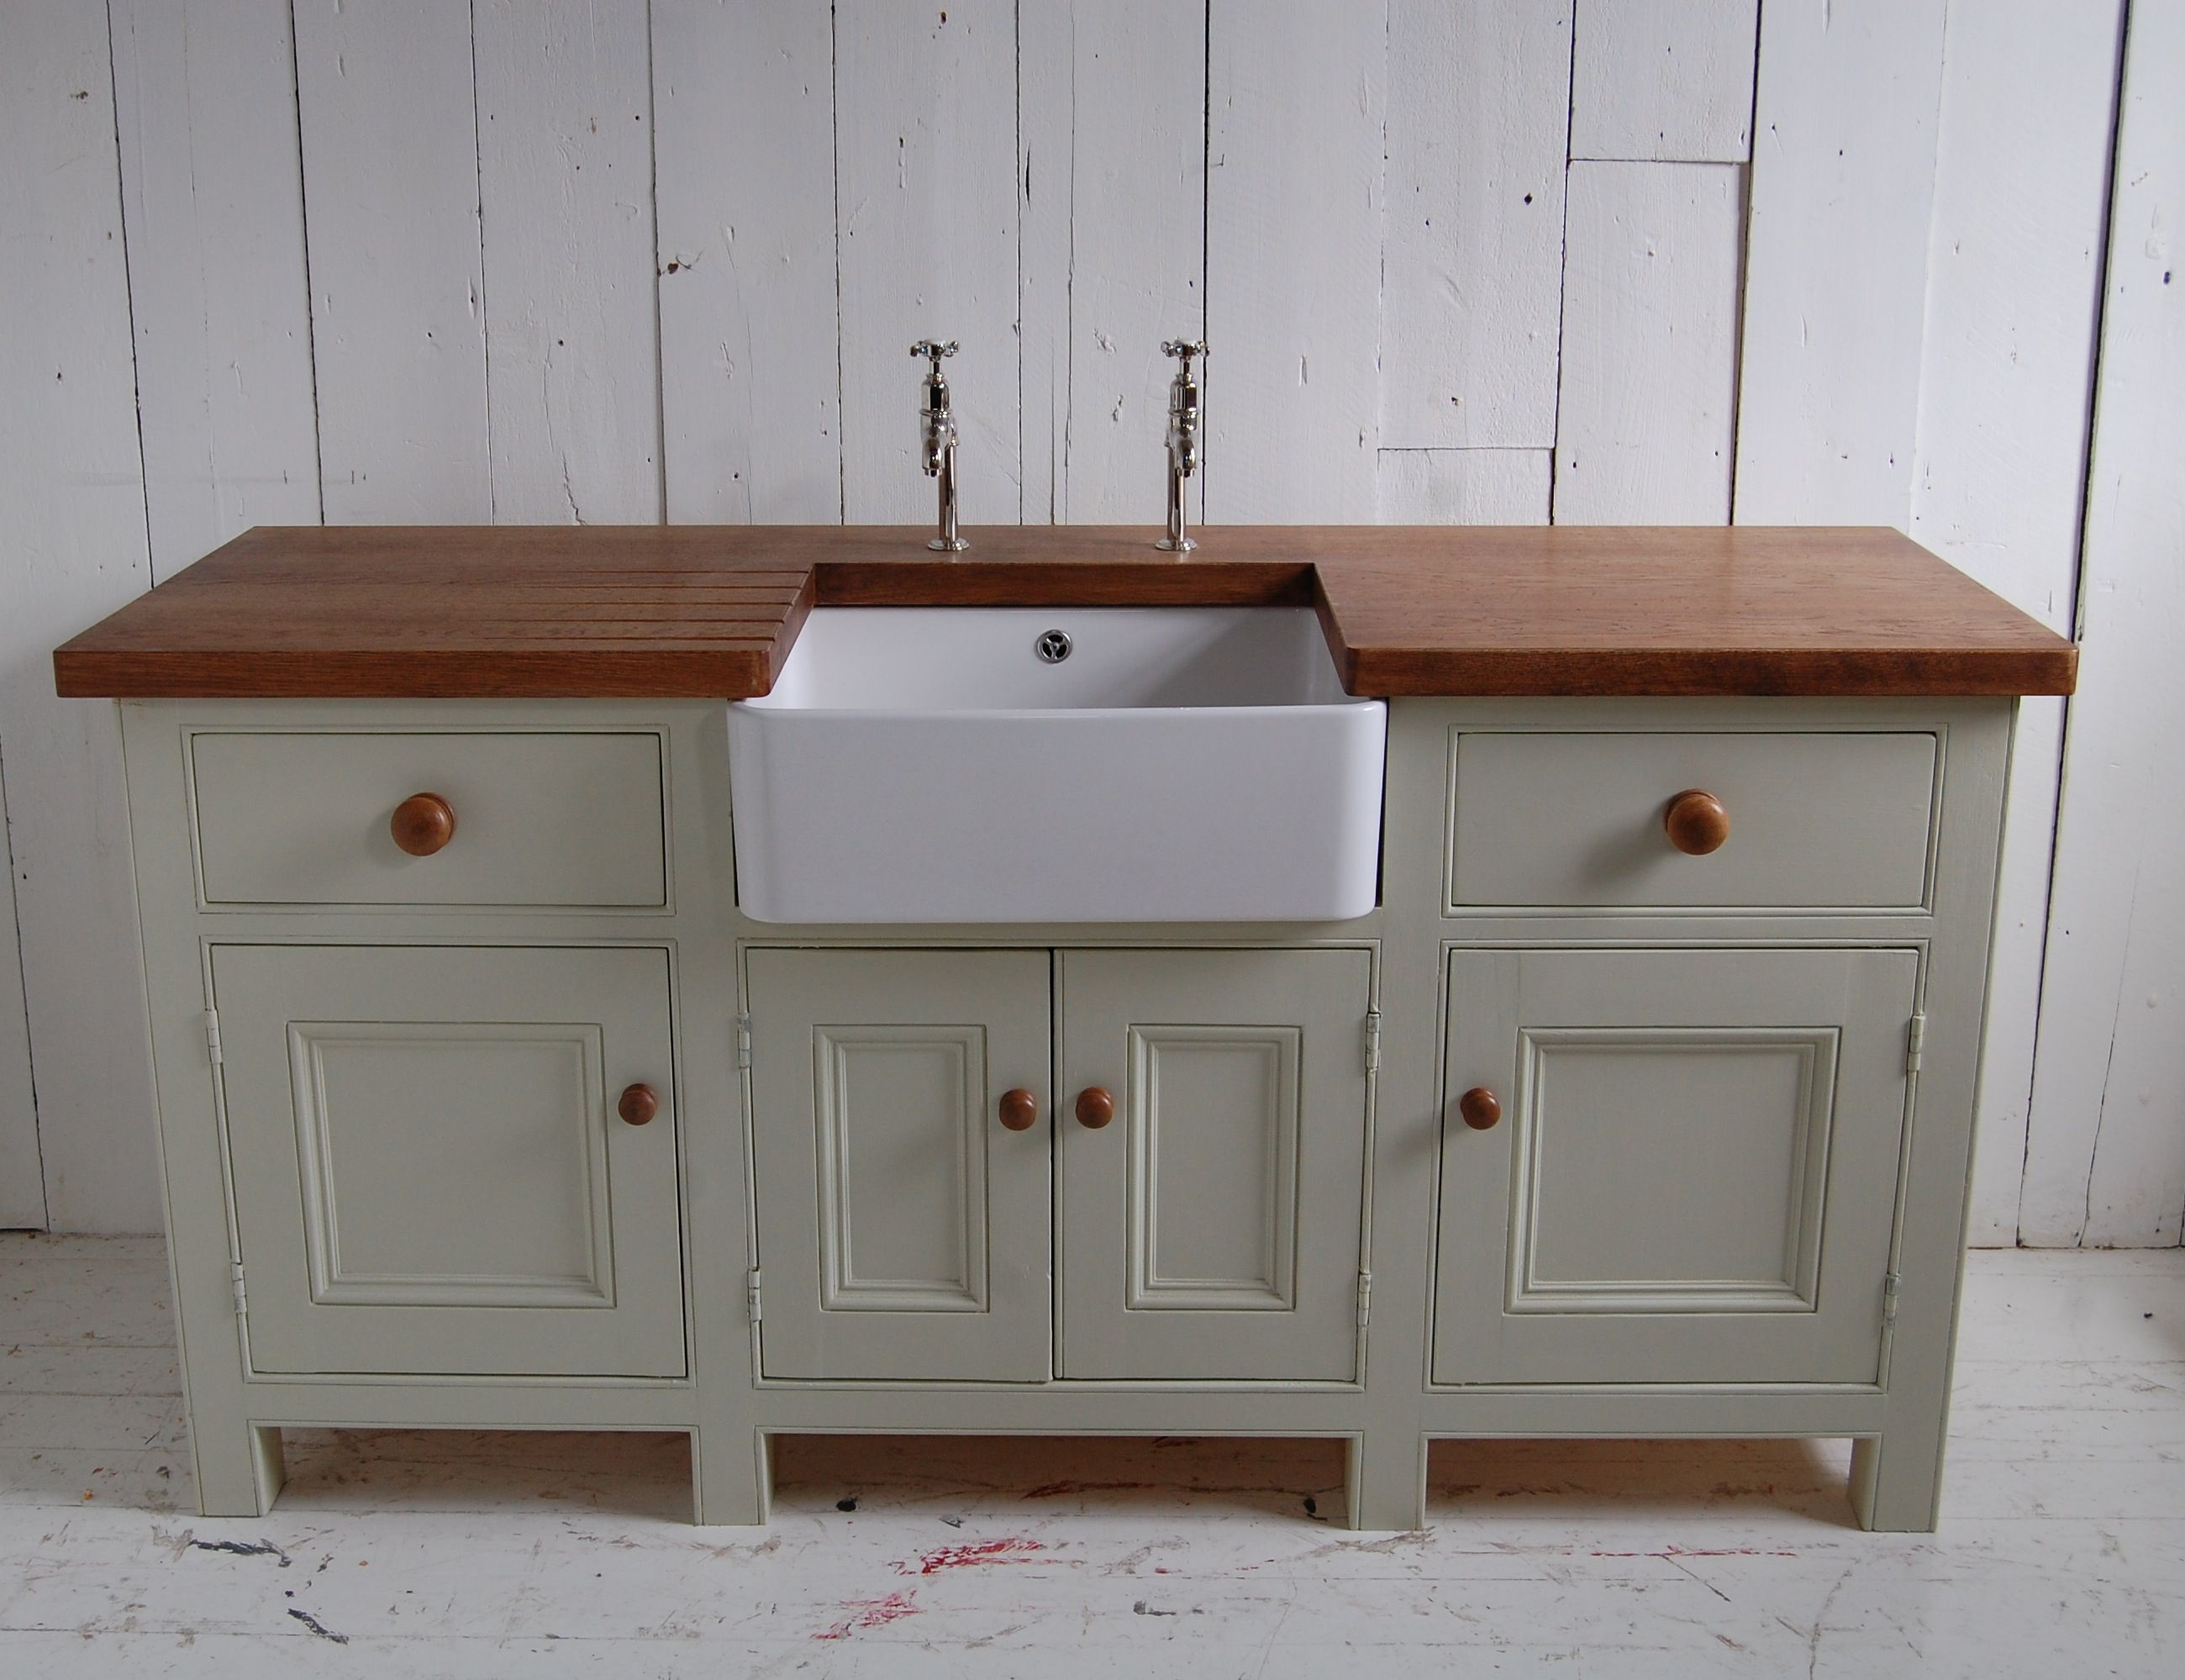 Pin by phil morrison on ireland kitchen pinterest for Kitchen cabinets ireland